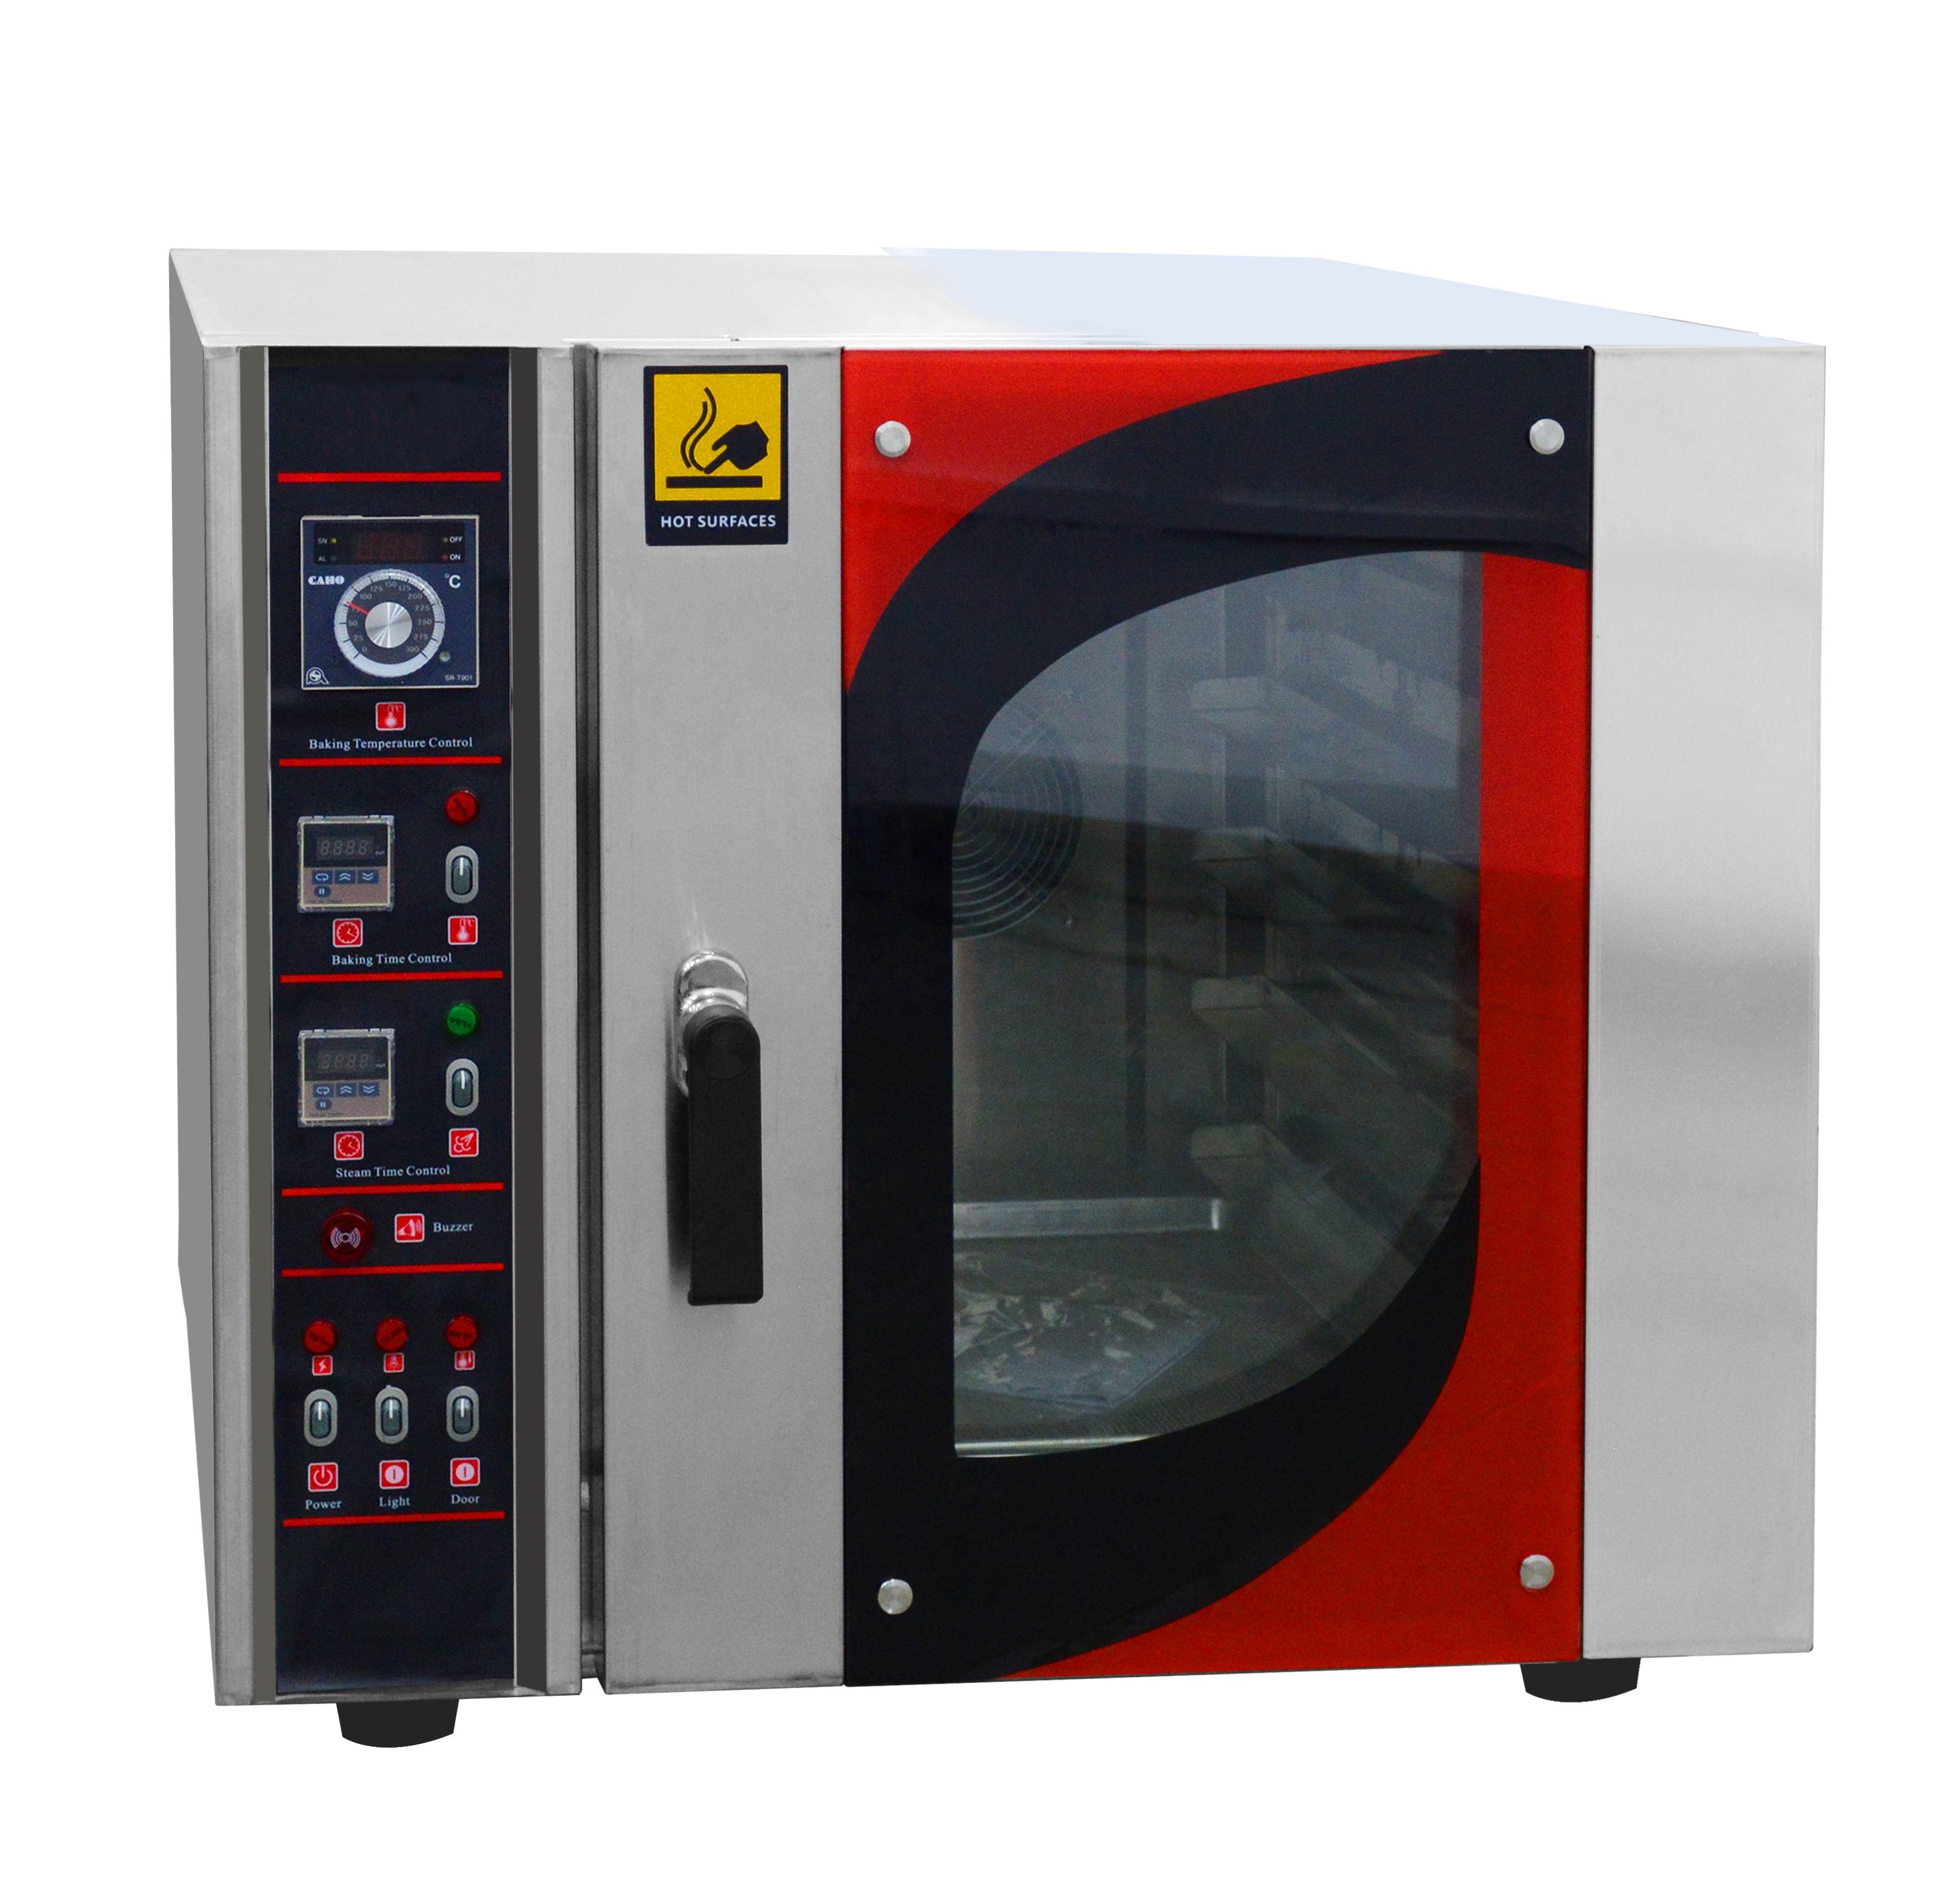 Kitchen Equipment Commercial 5 Trays Hot Air Steam Convection Electric Oven with Fan